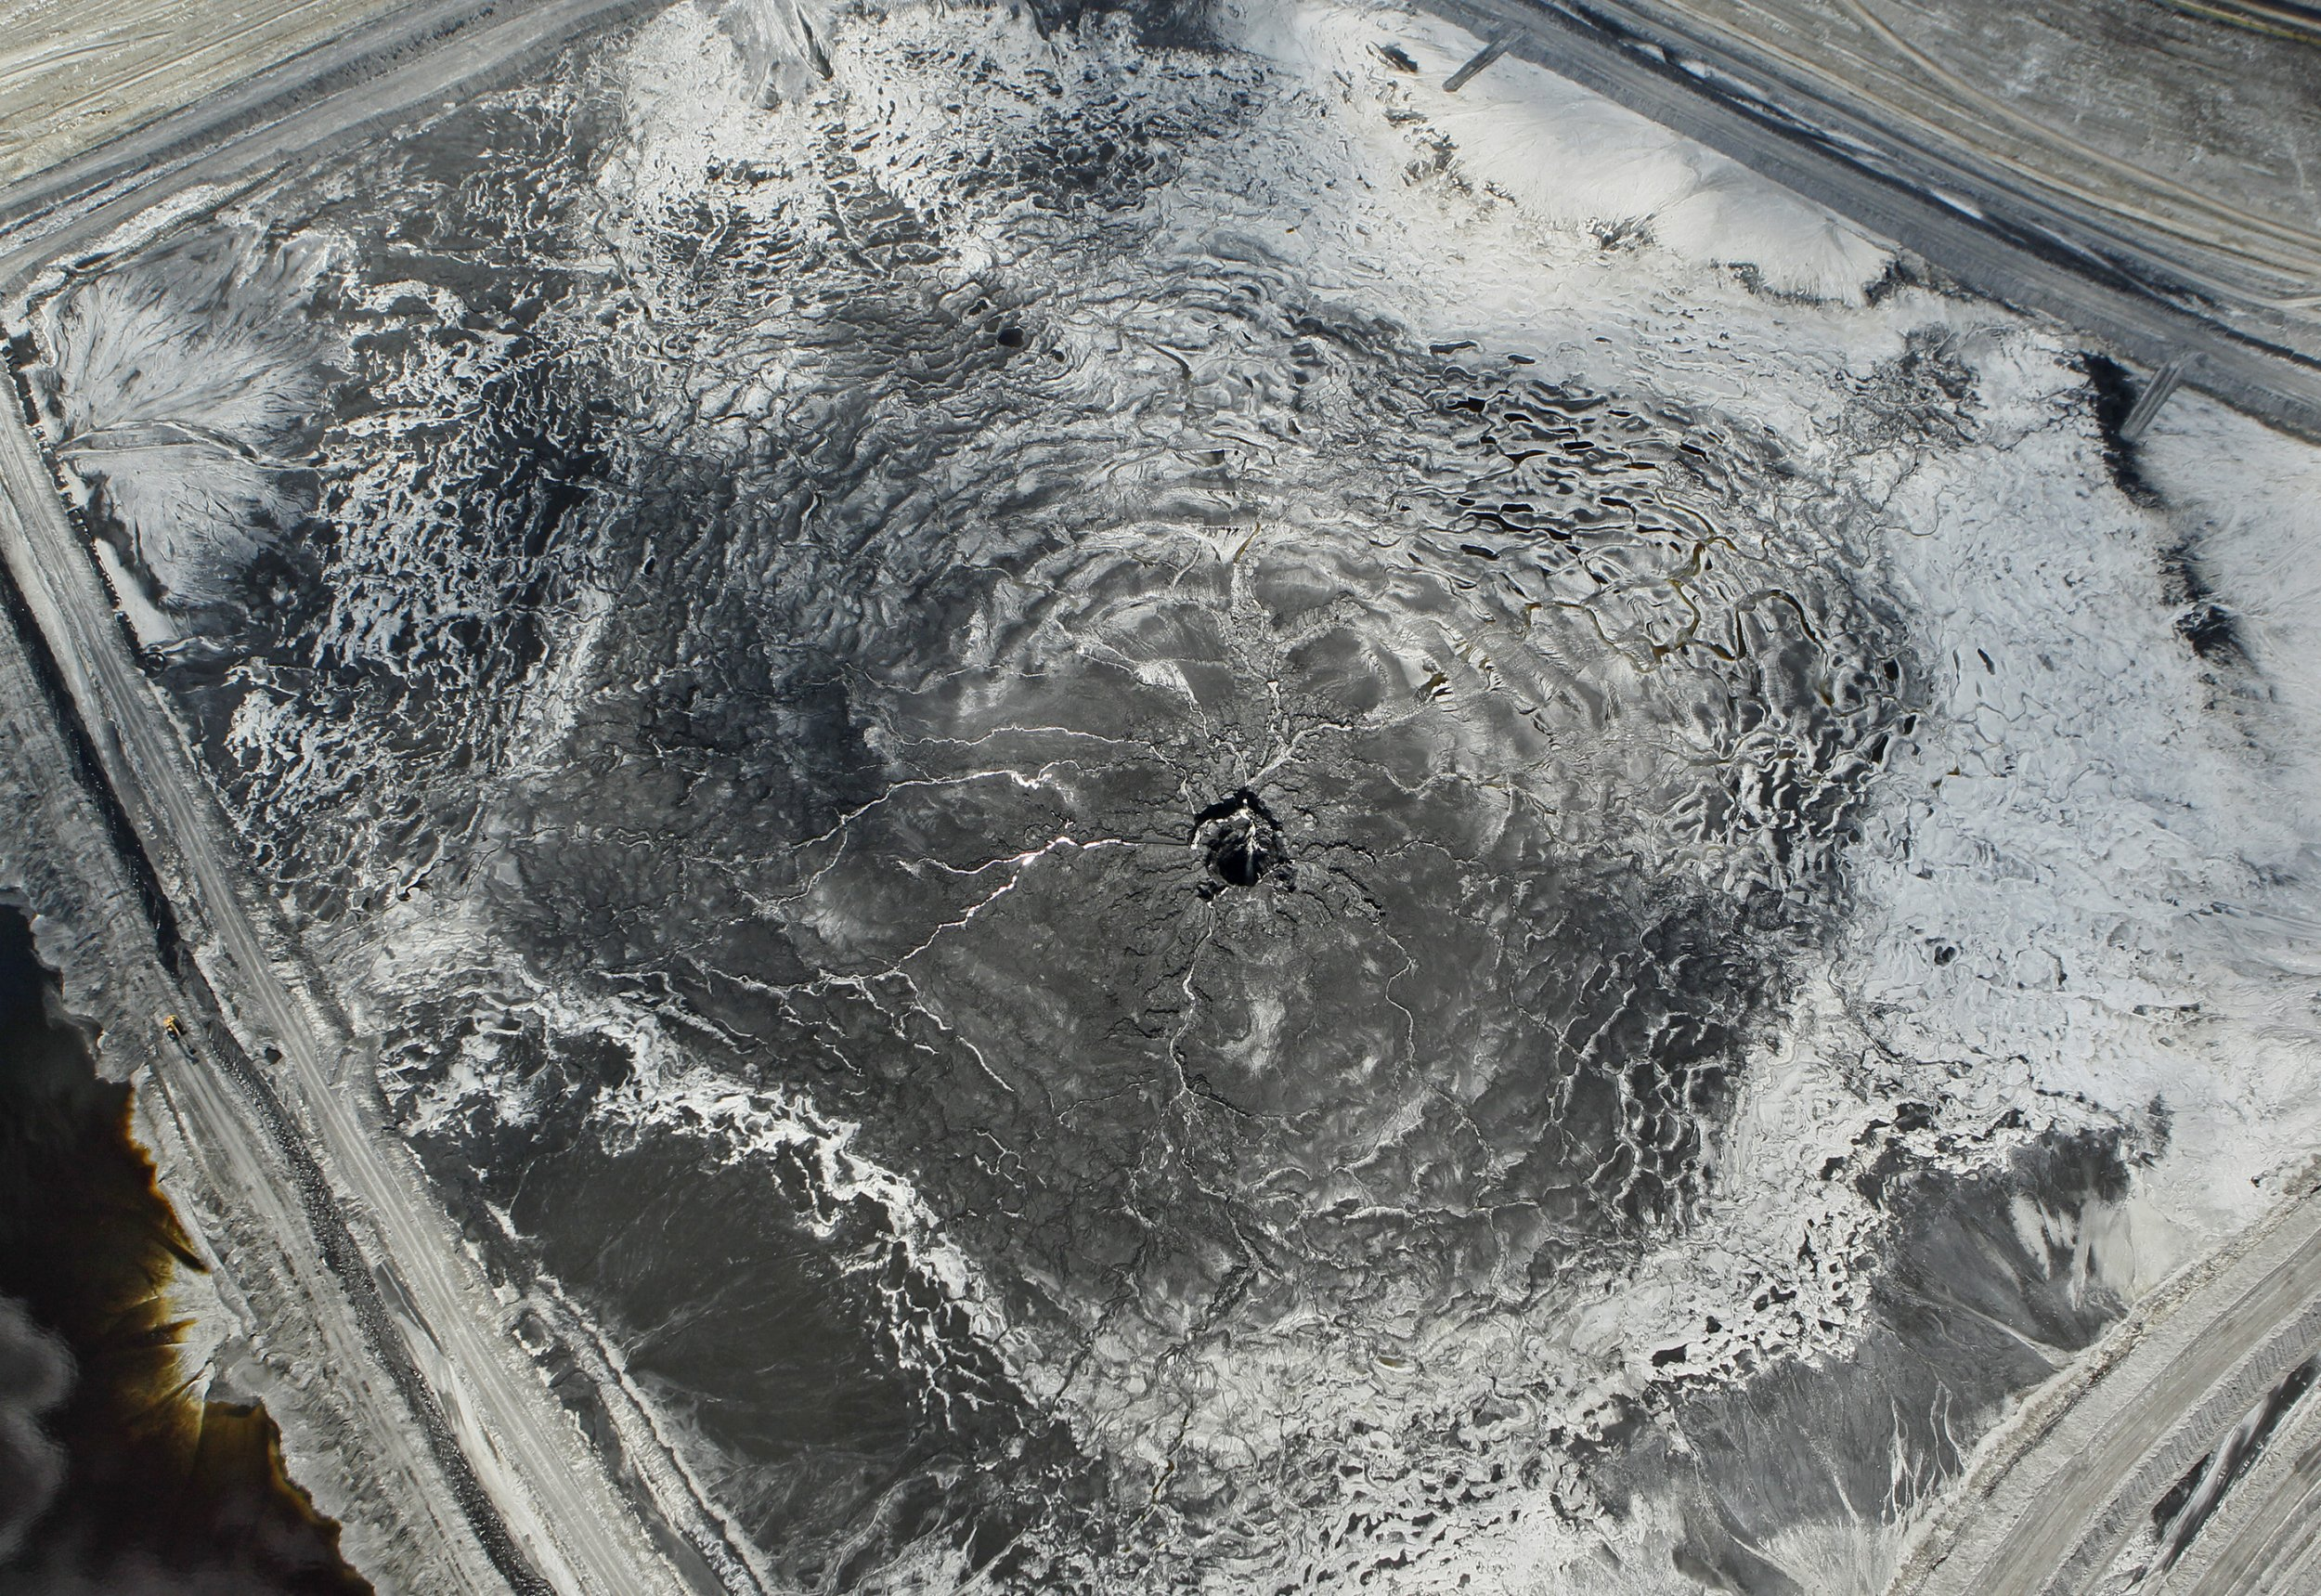 Sinkhole leaks 200million gallons of radioactive waste into drinking water